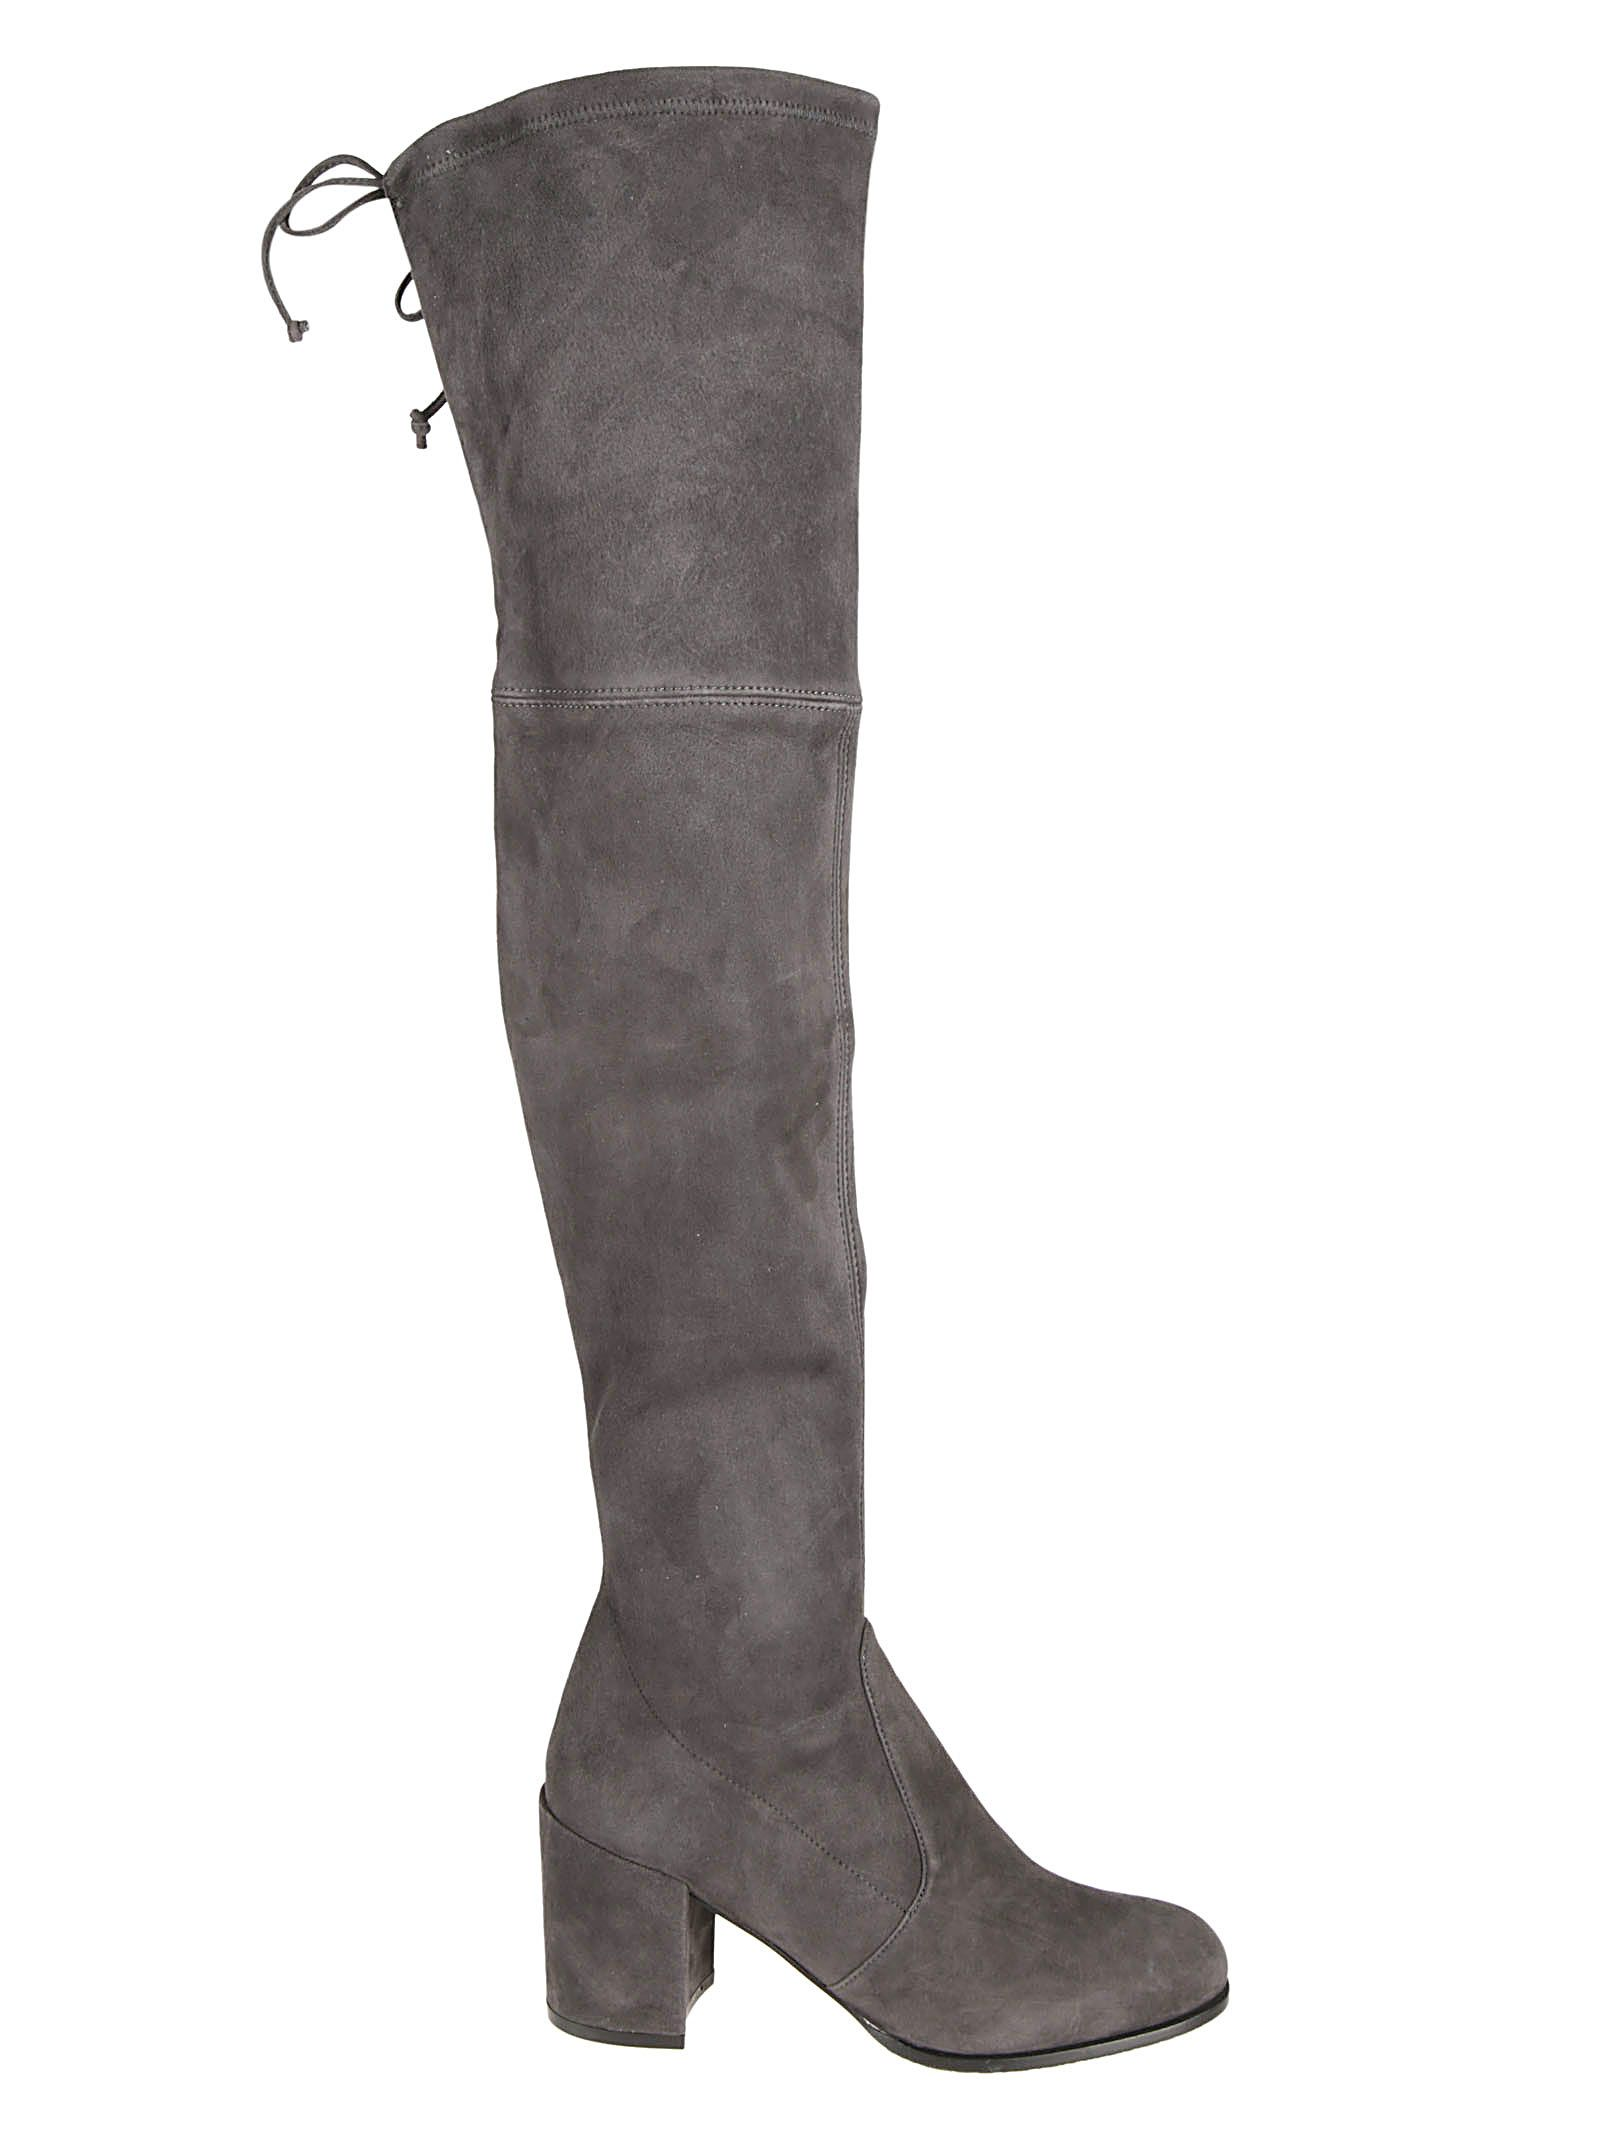 Tieland Over-The-Knee-Boots in Asphalt